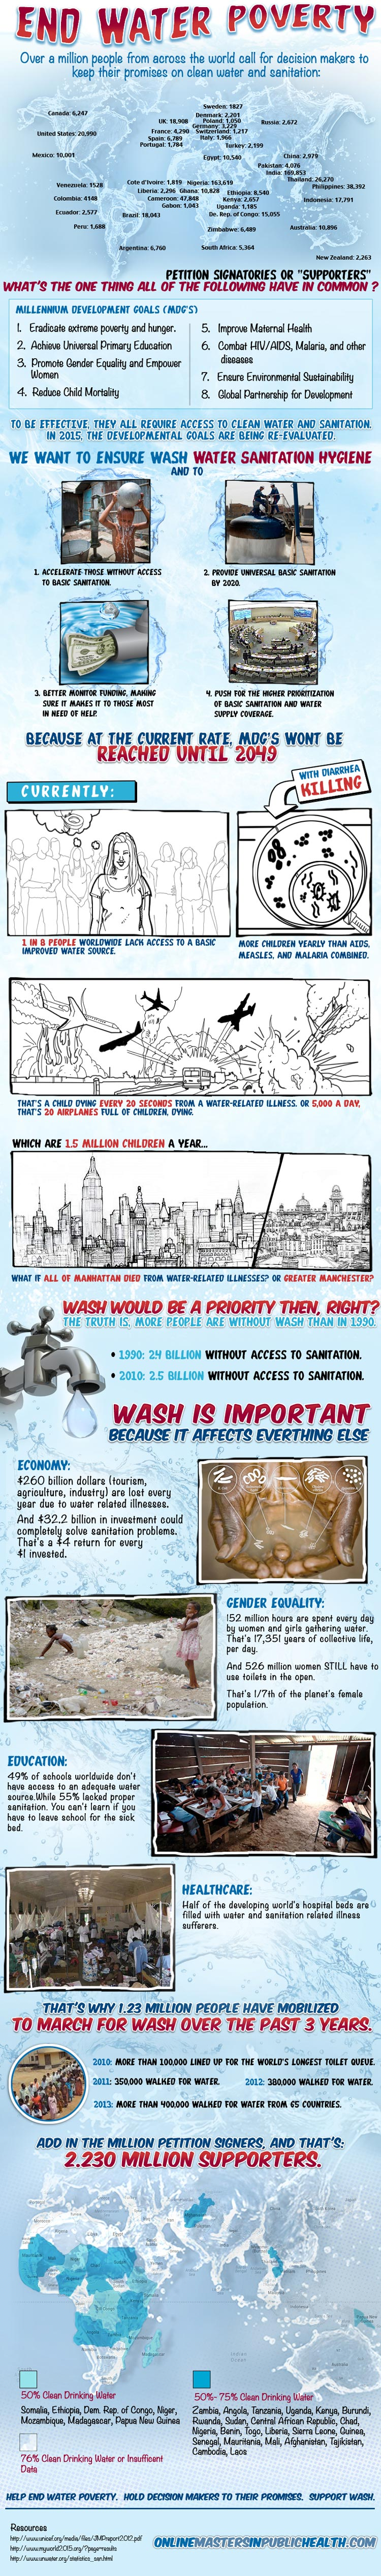 Clean Water Shortage-Infographic